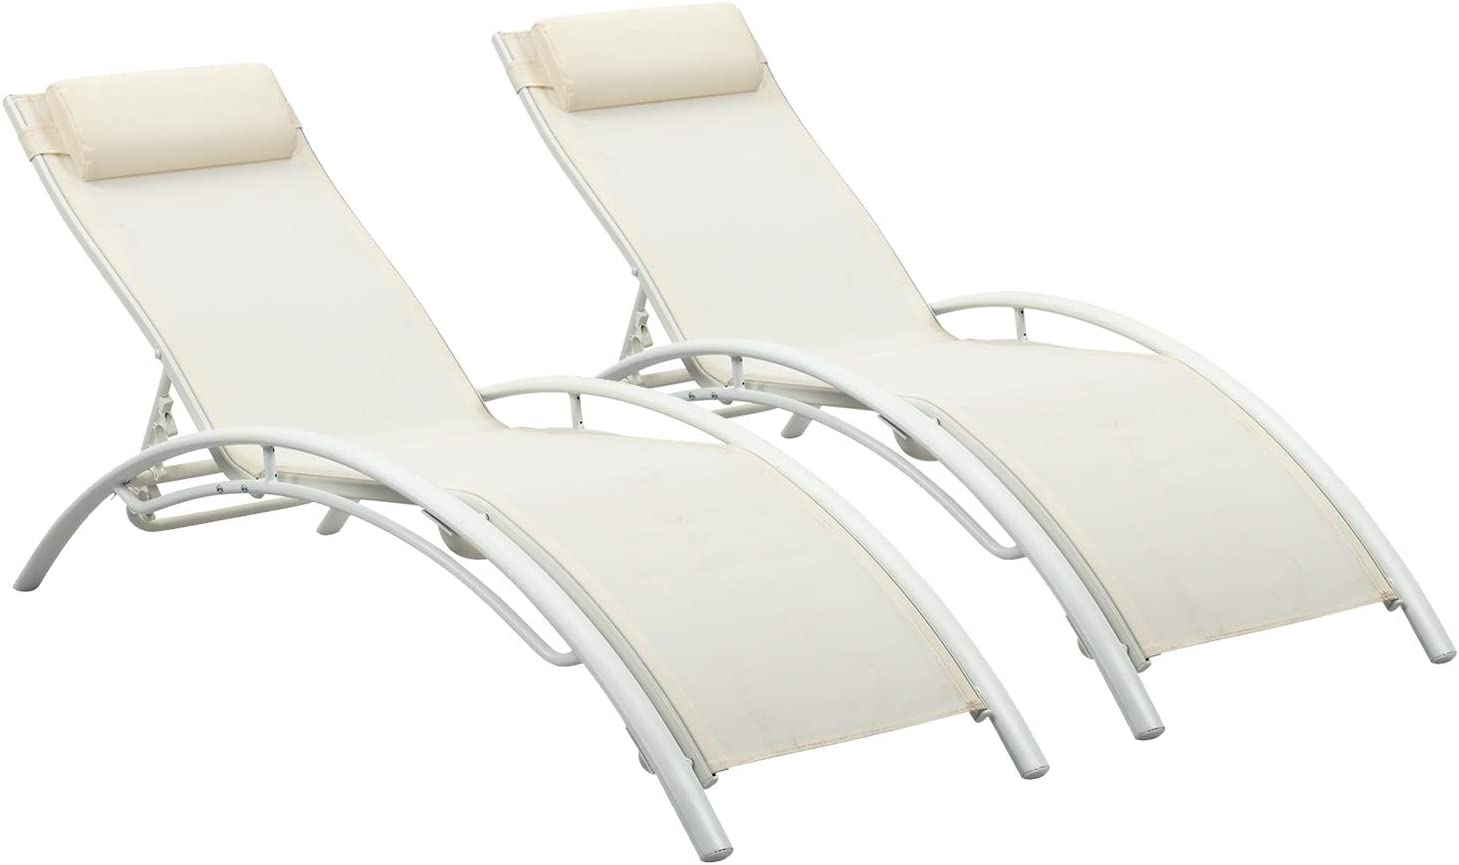 Ainfox Adjustable Chaise Lounge, Patio Reclining Elegant Lounge Chair Recliners Aluminum Sunbathing Chair with Headrest2 Pack (White)